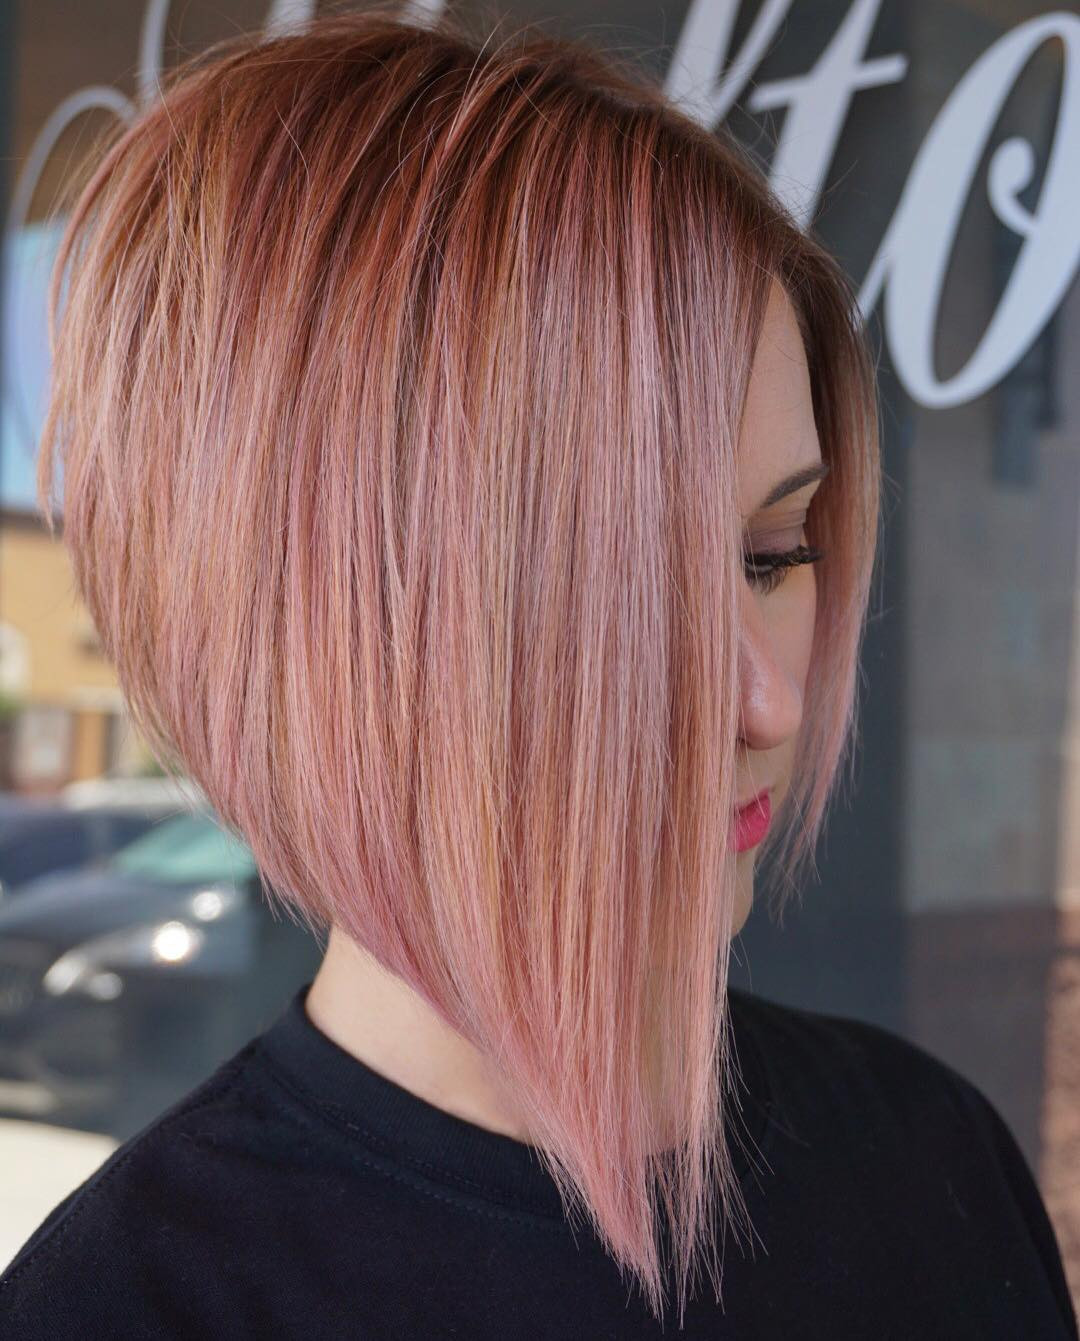 Best ideas about Short Haircuts For Girls 2019 . Save or Pin 10 Flattering Short Straight Hairstyles 2019 Now.